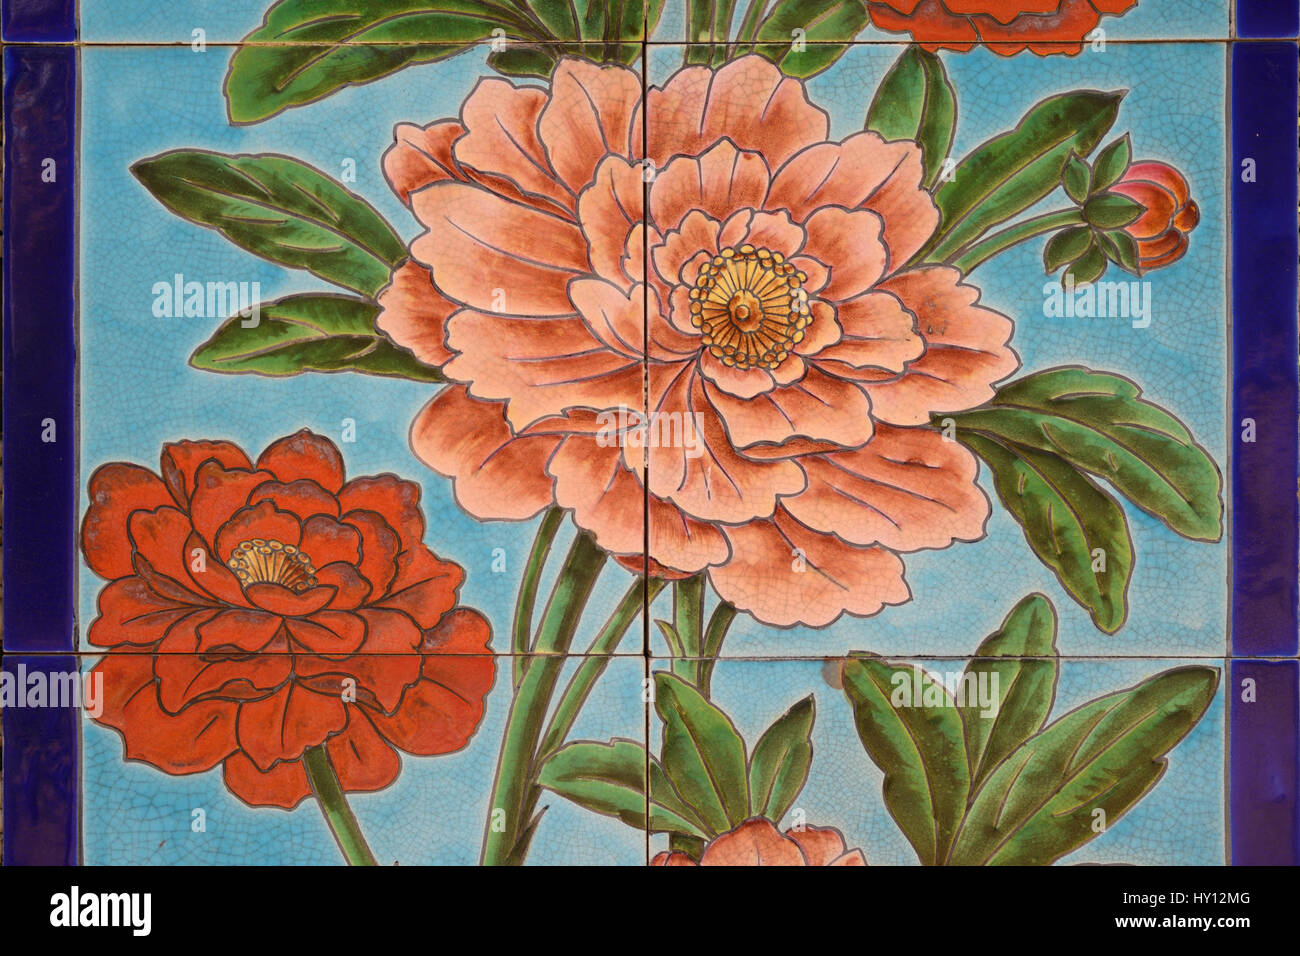 Historic Floral Wall Tiles with Carnation Flowers 1902 from a Parisian Hotel - Stock Image